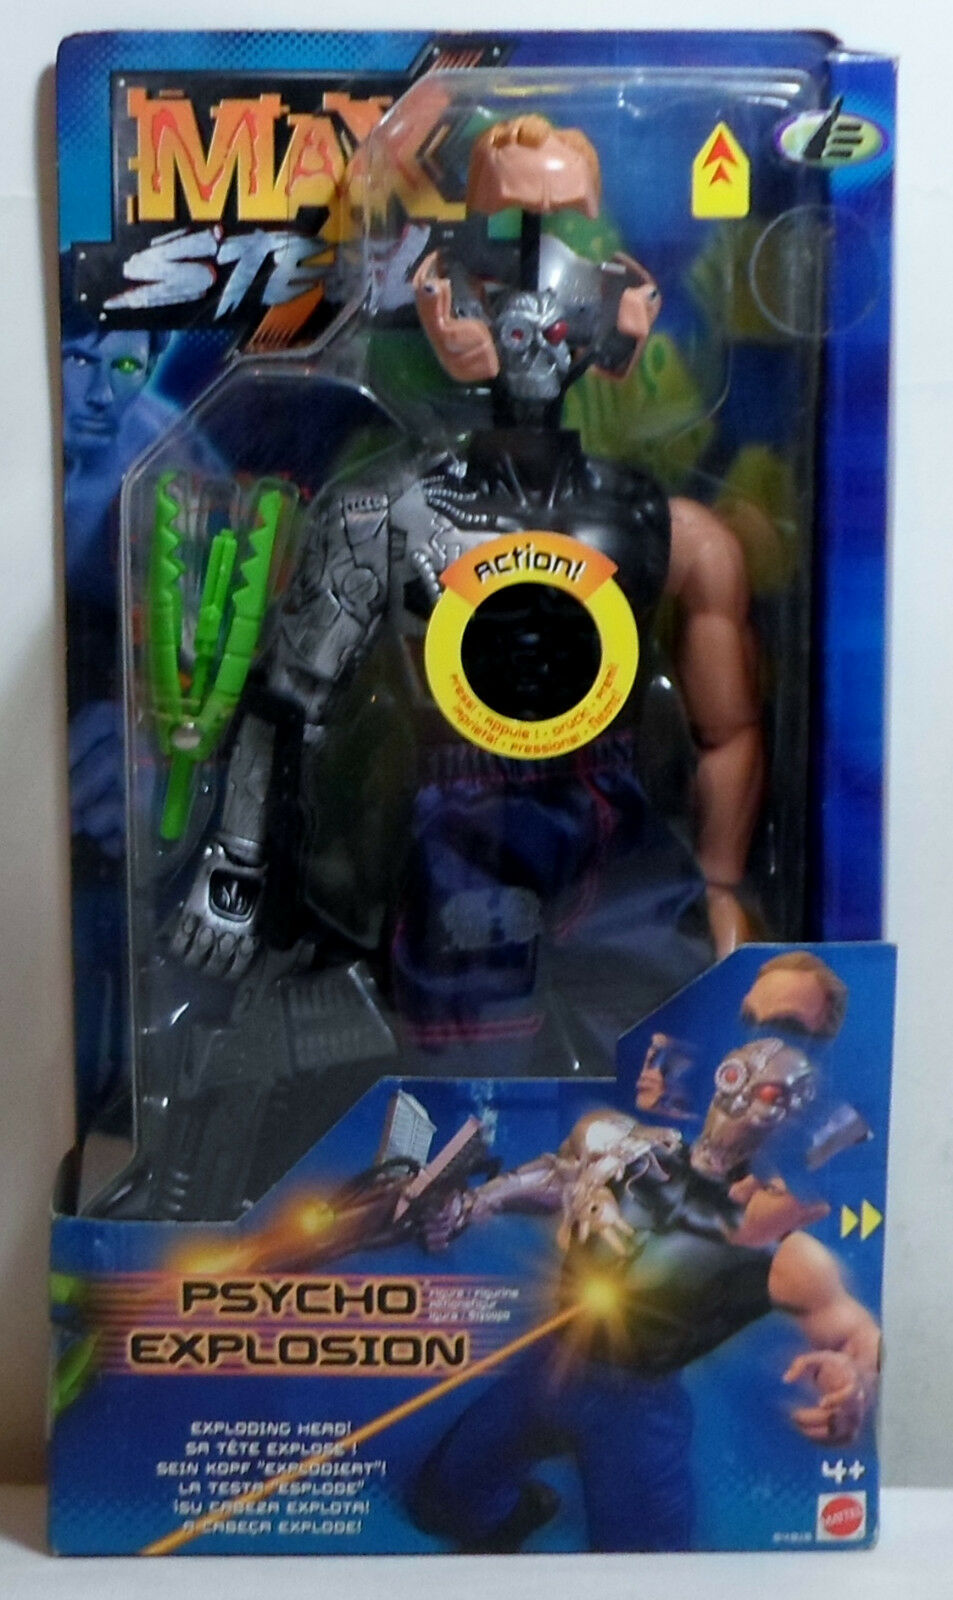 MATTEL 2000 MAX STEEL PSYCHO EXPLOSION 12'' EUROPEAN ACTION FIGURE MOSC SEALED